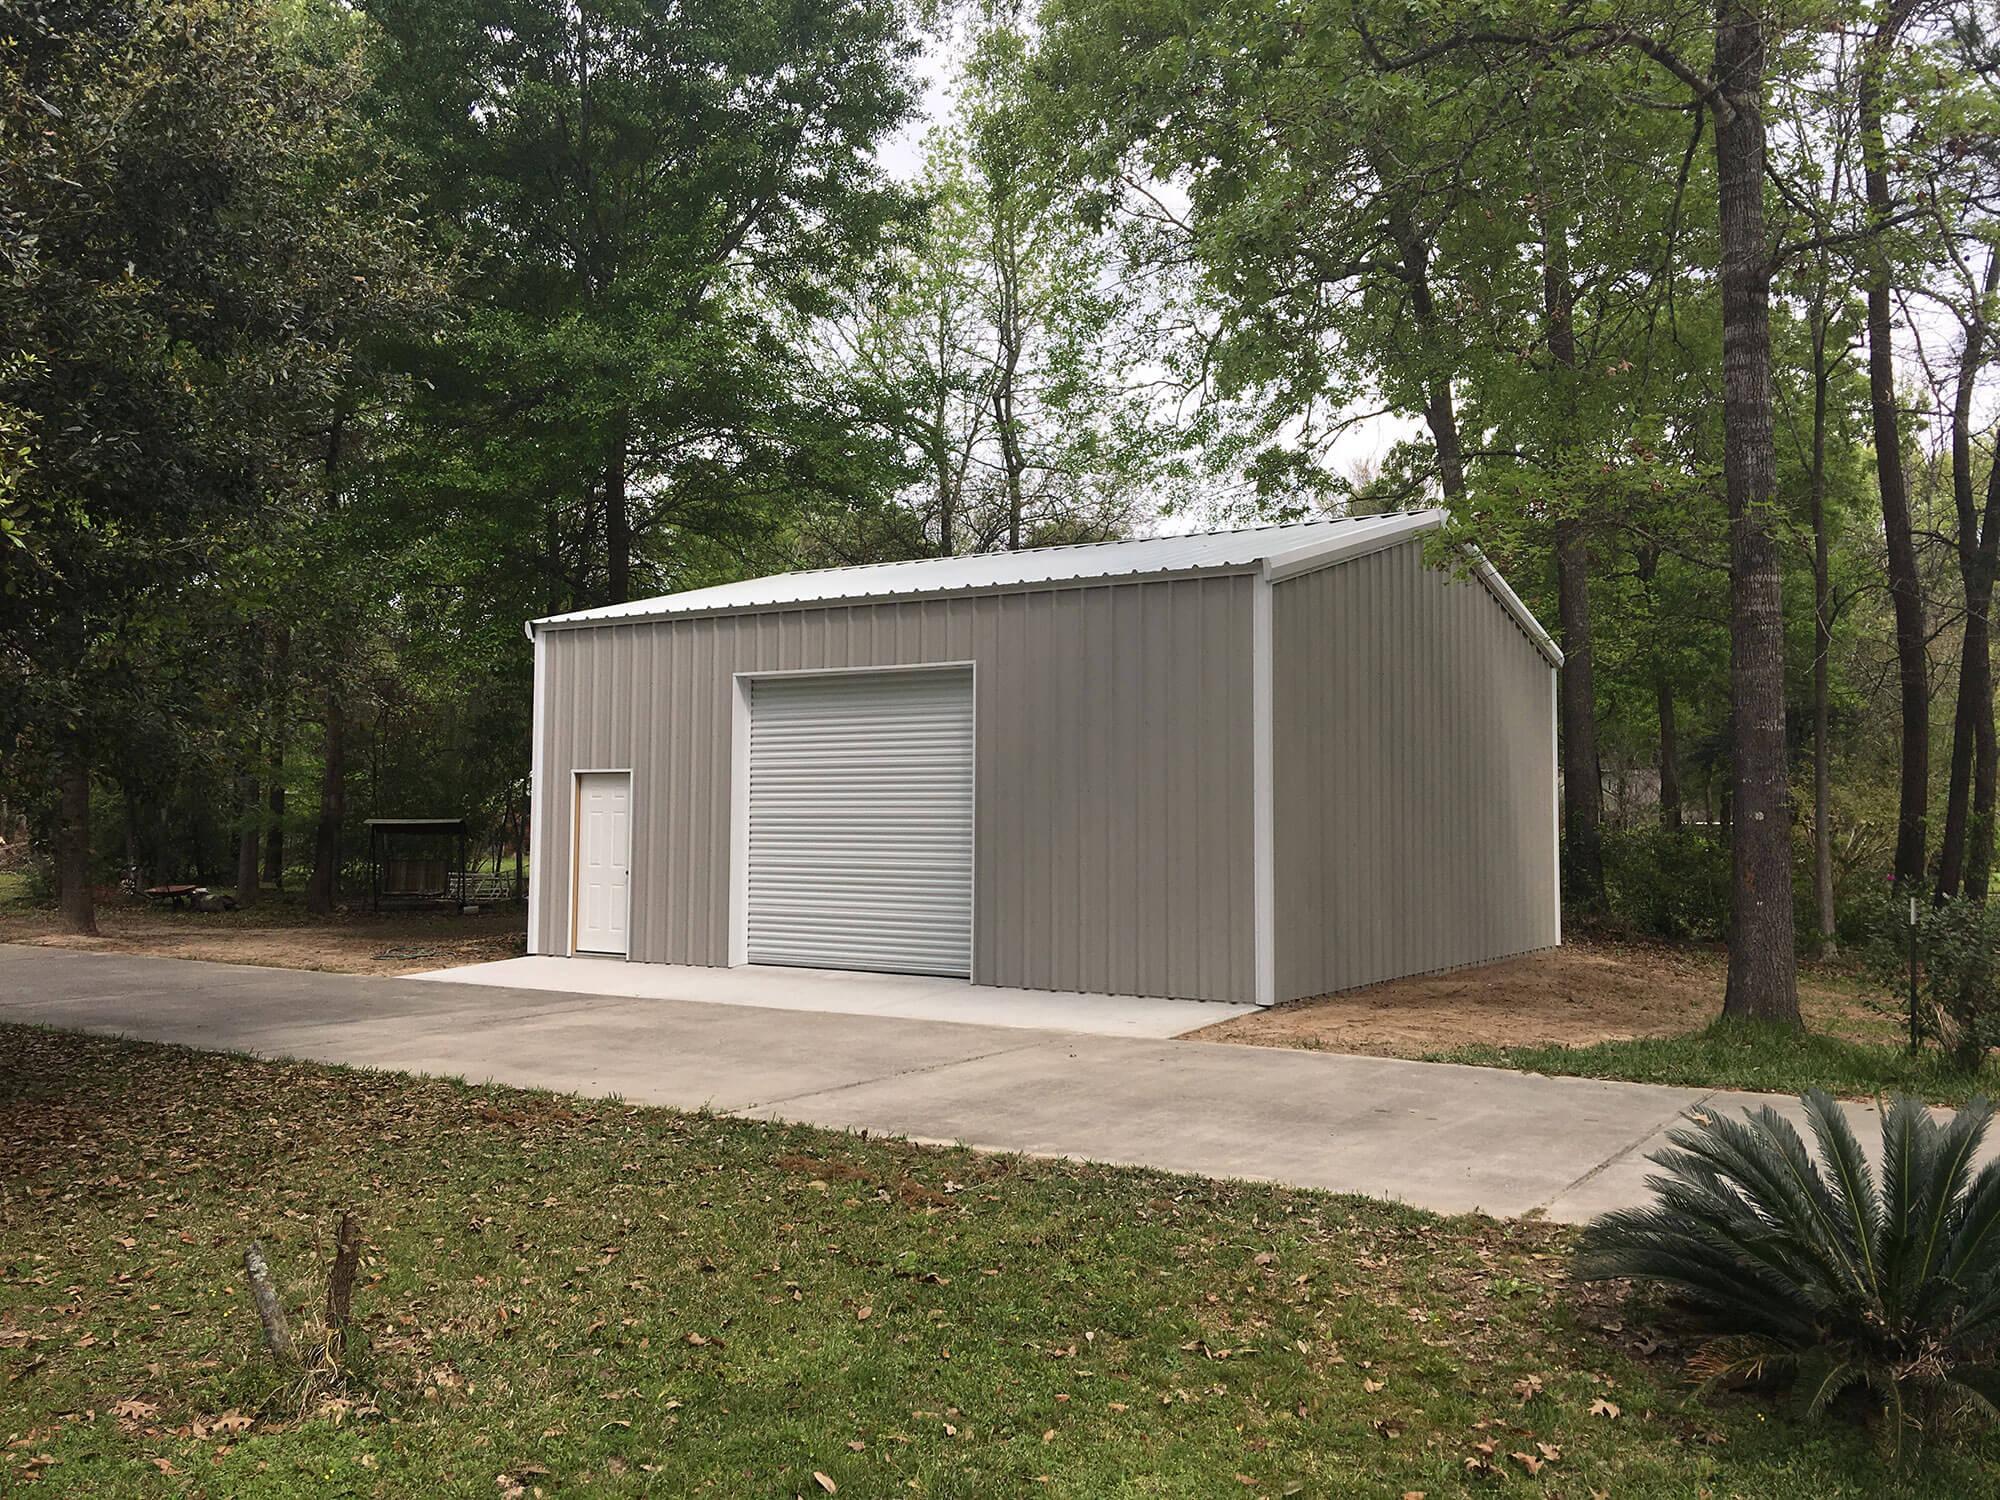 30'x30' Building - Steel Garages and Shops - 770